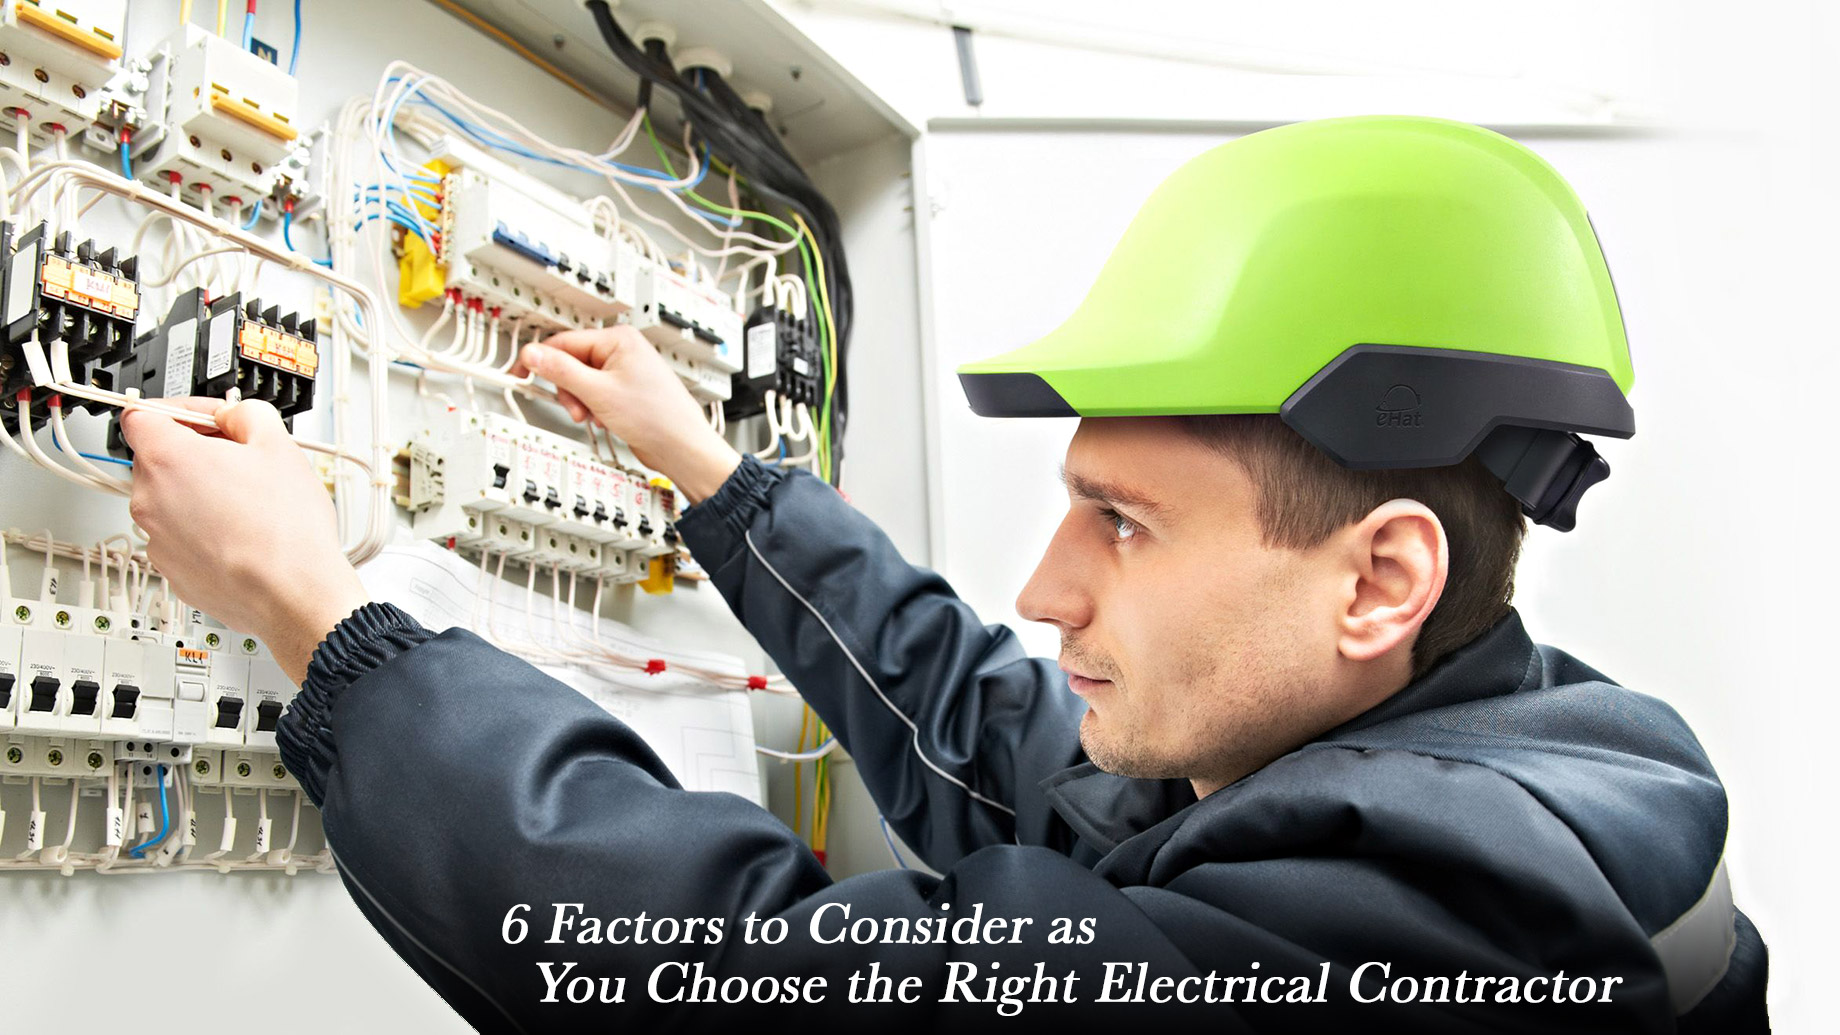 6 Factors to Consider as You Choose the Right Electrical Contractor